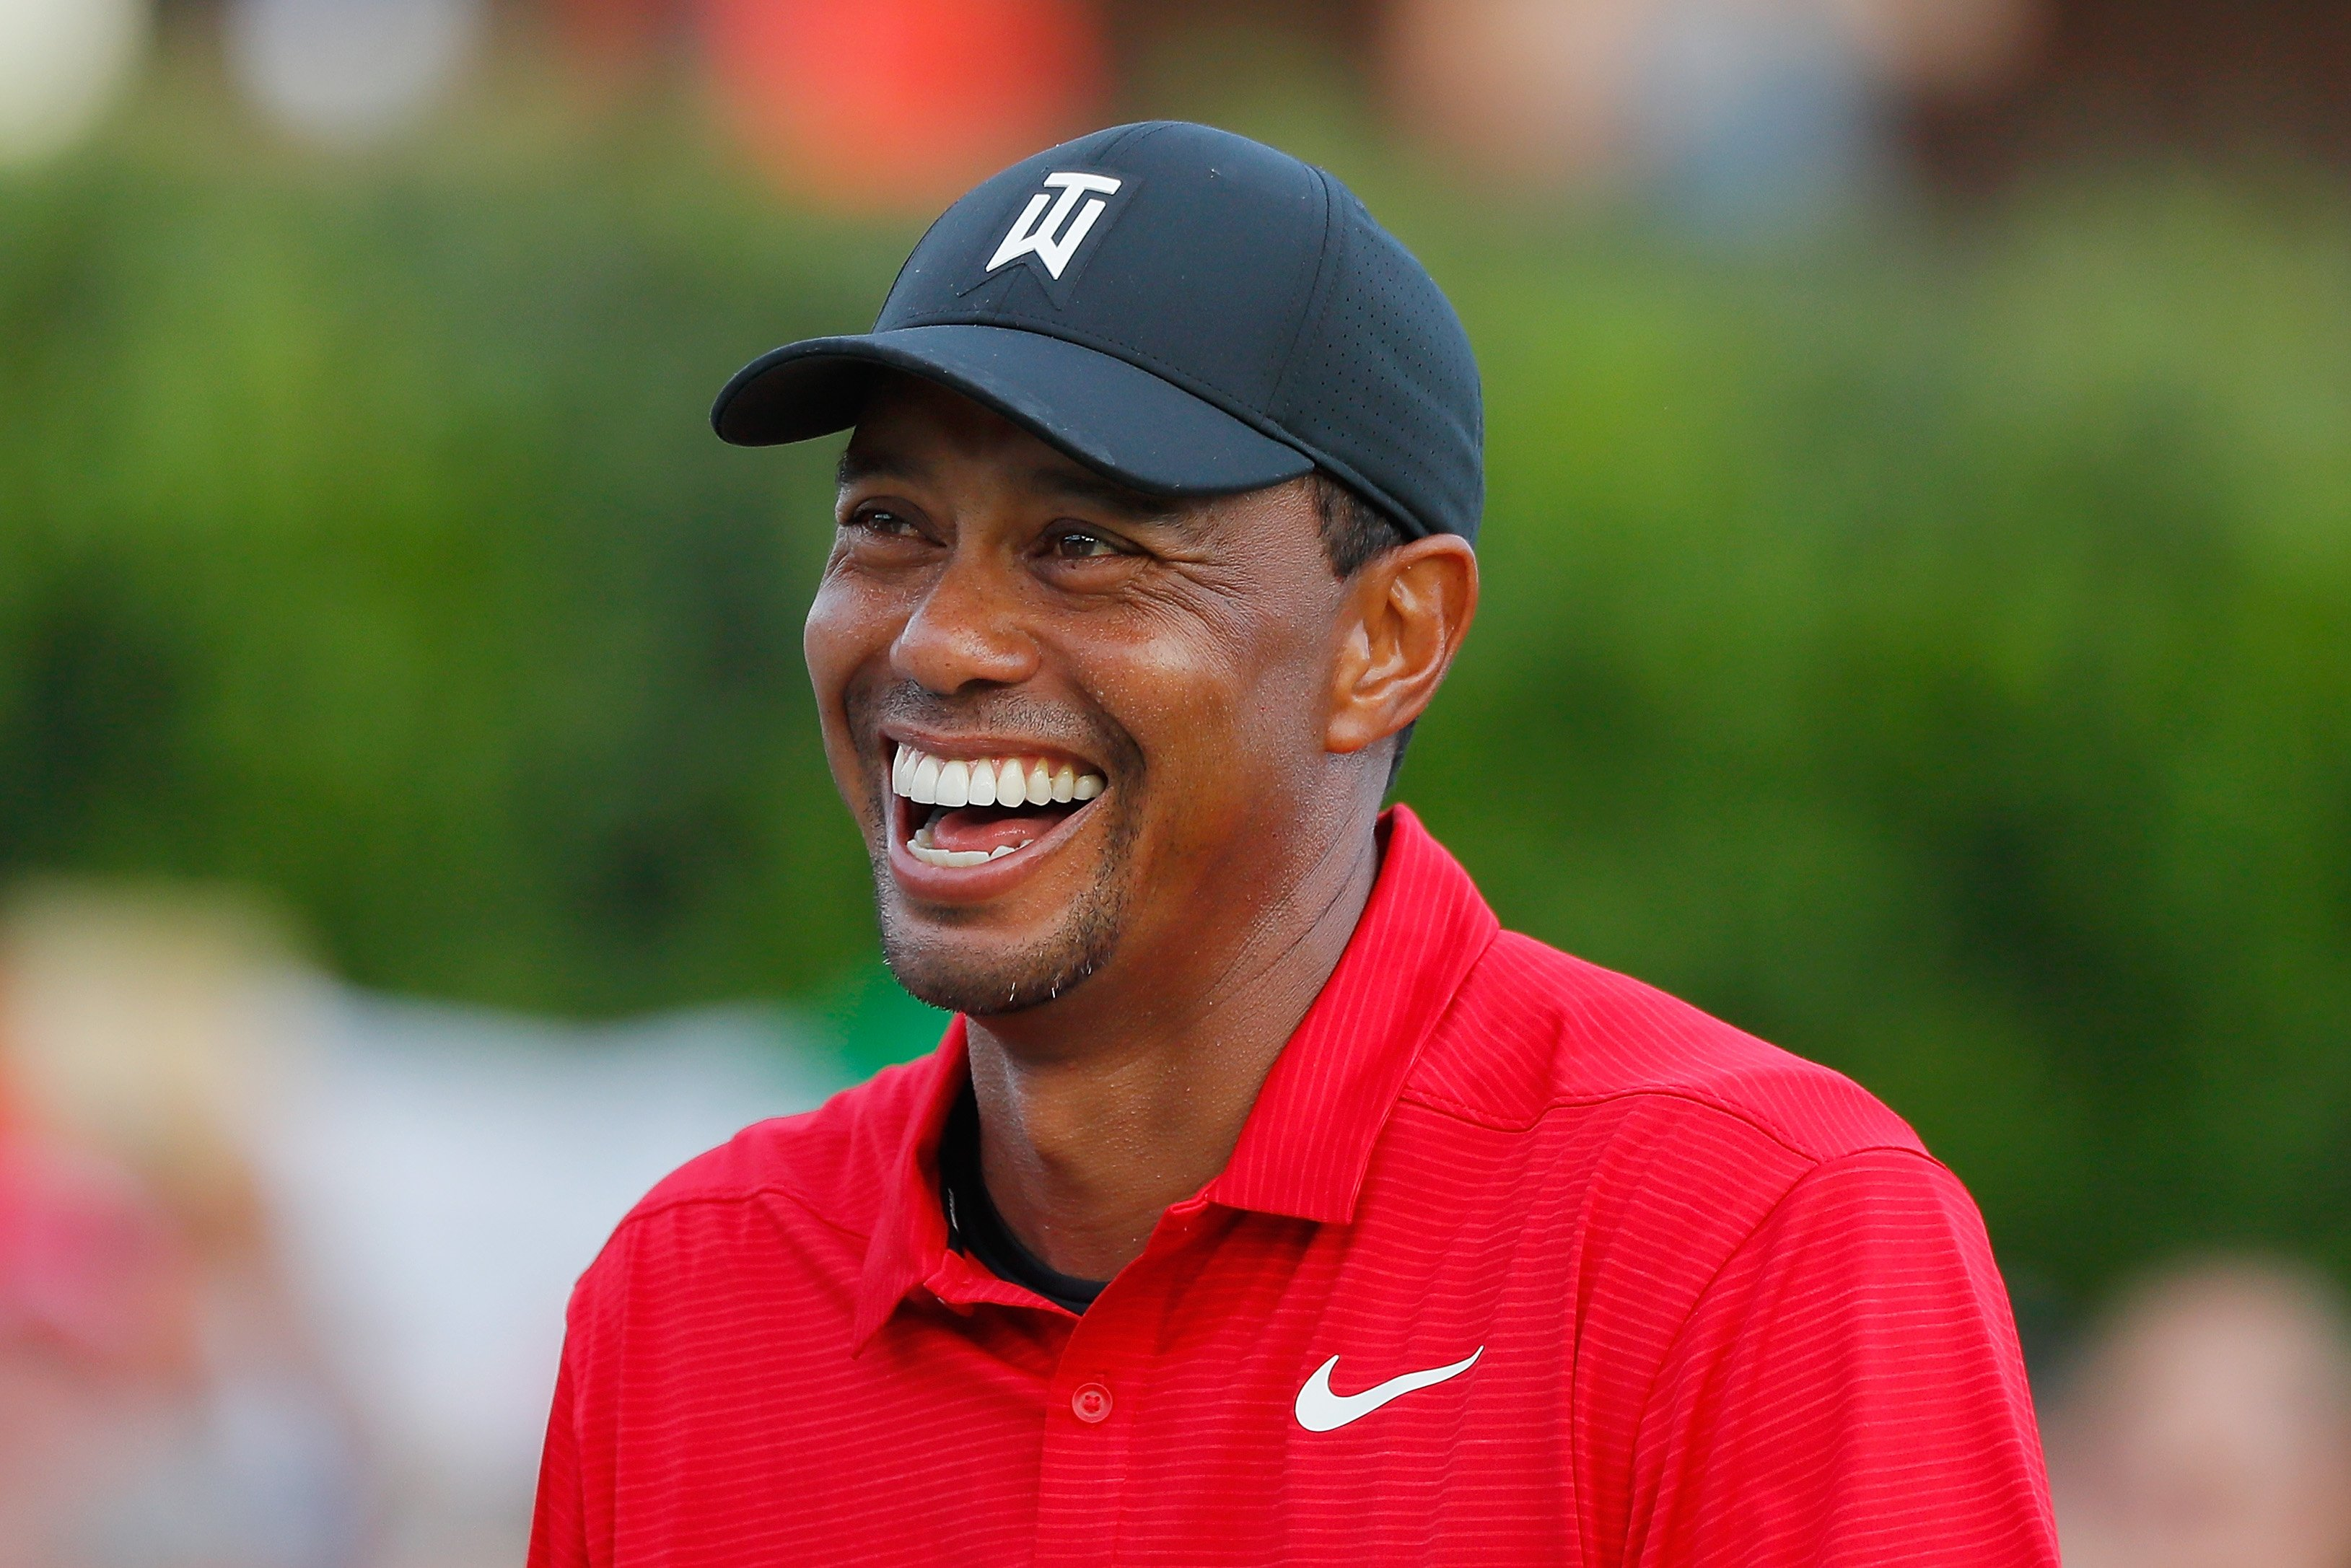 Tiger Woods when he won the Tour Championship on September, 23, 2018 in Atlanta, Georgia. | Photo: Getty Images